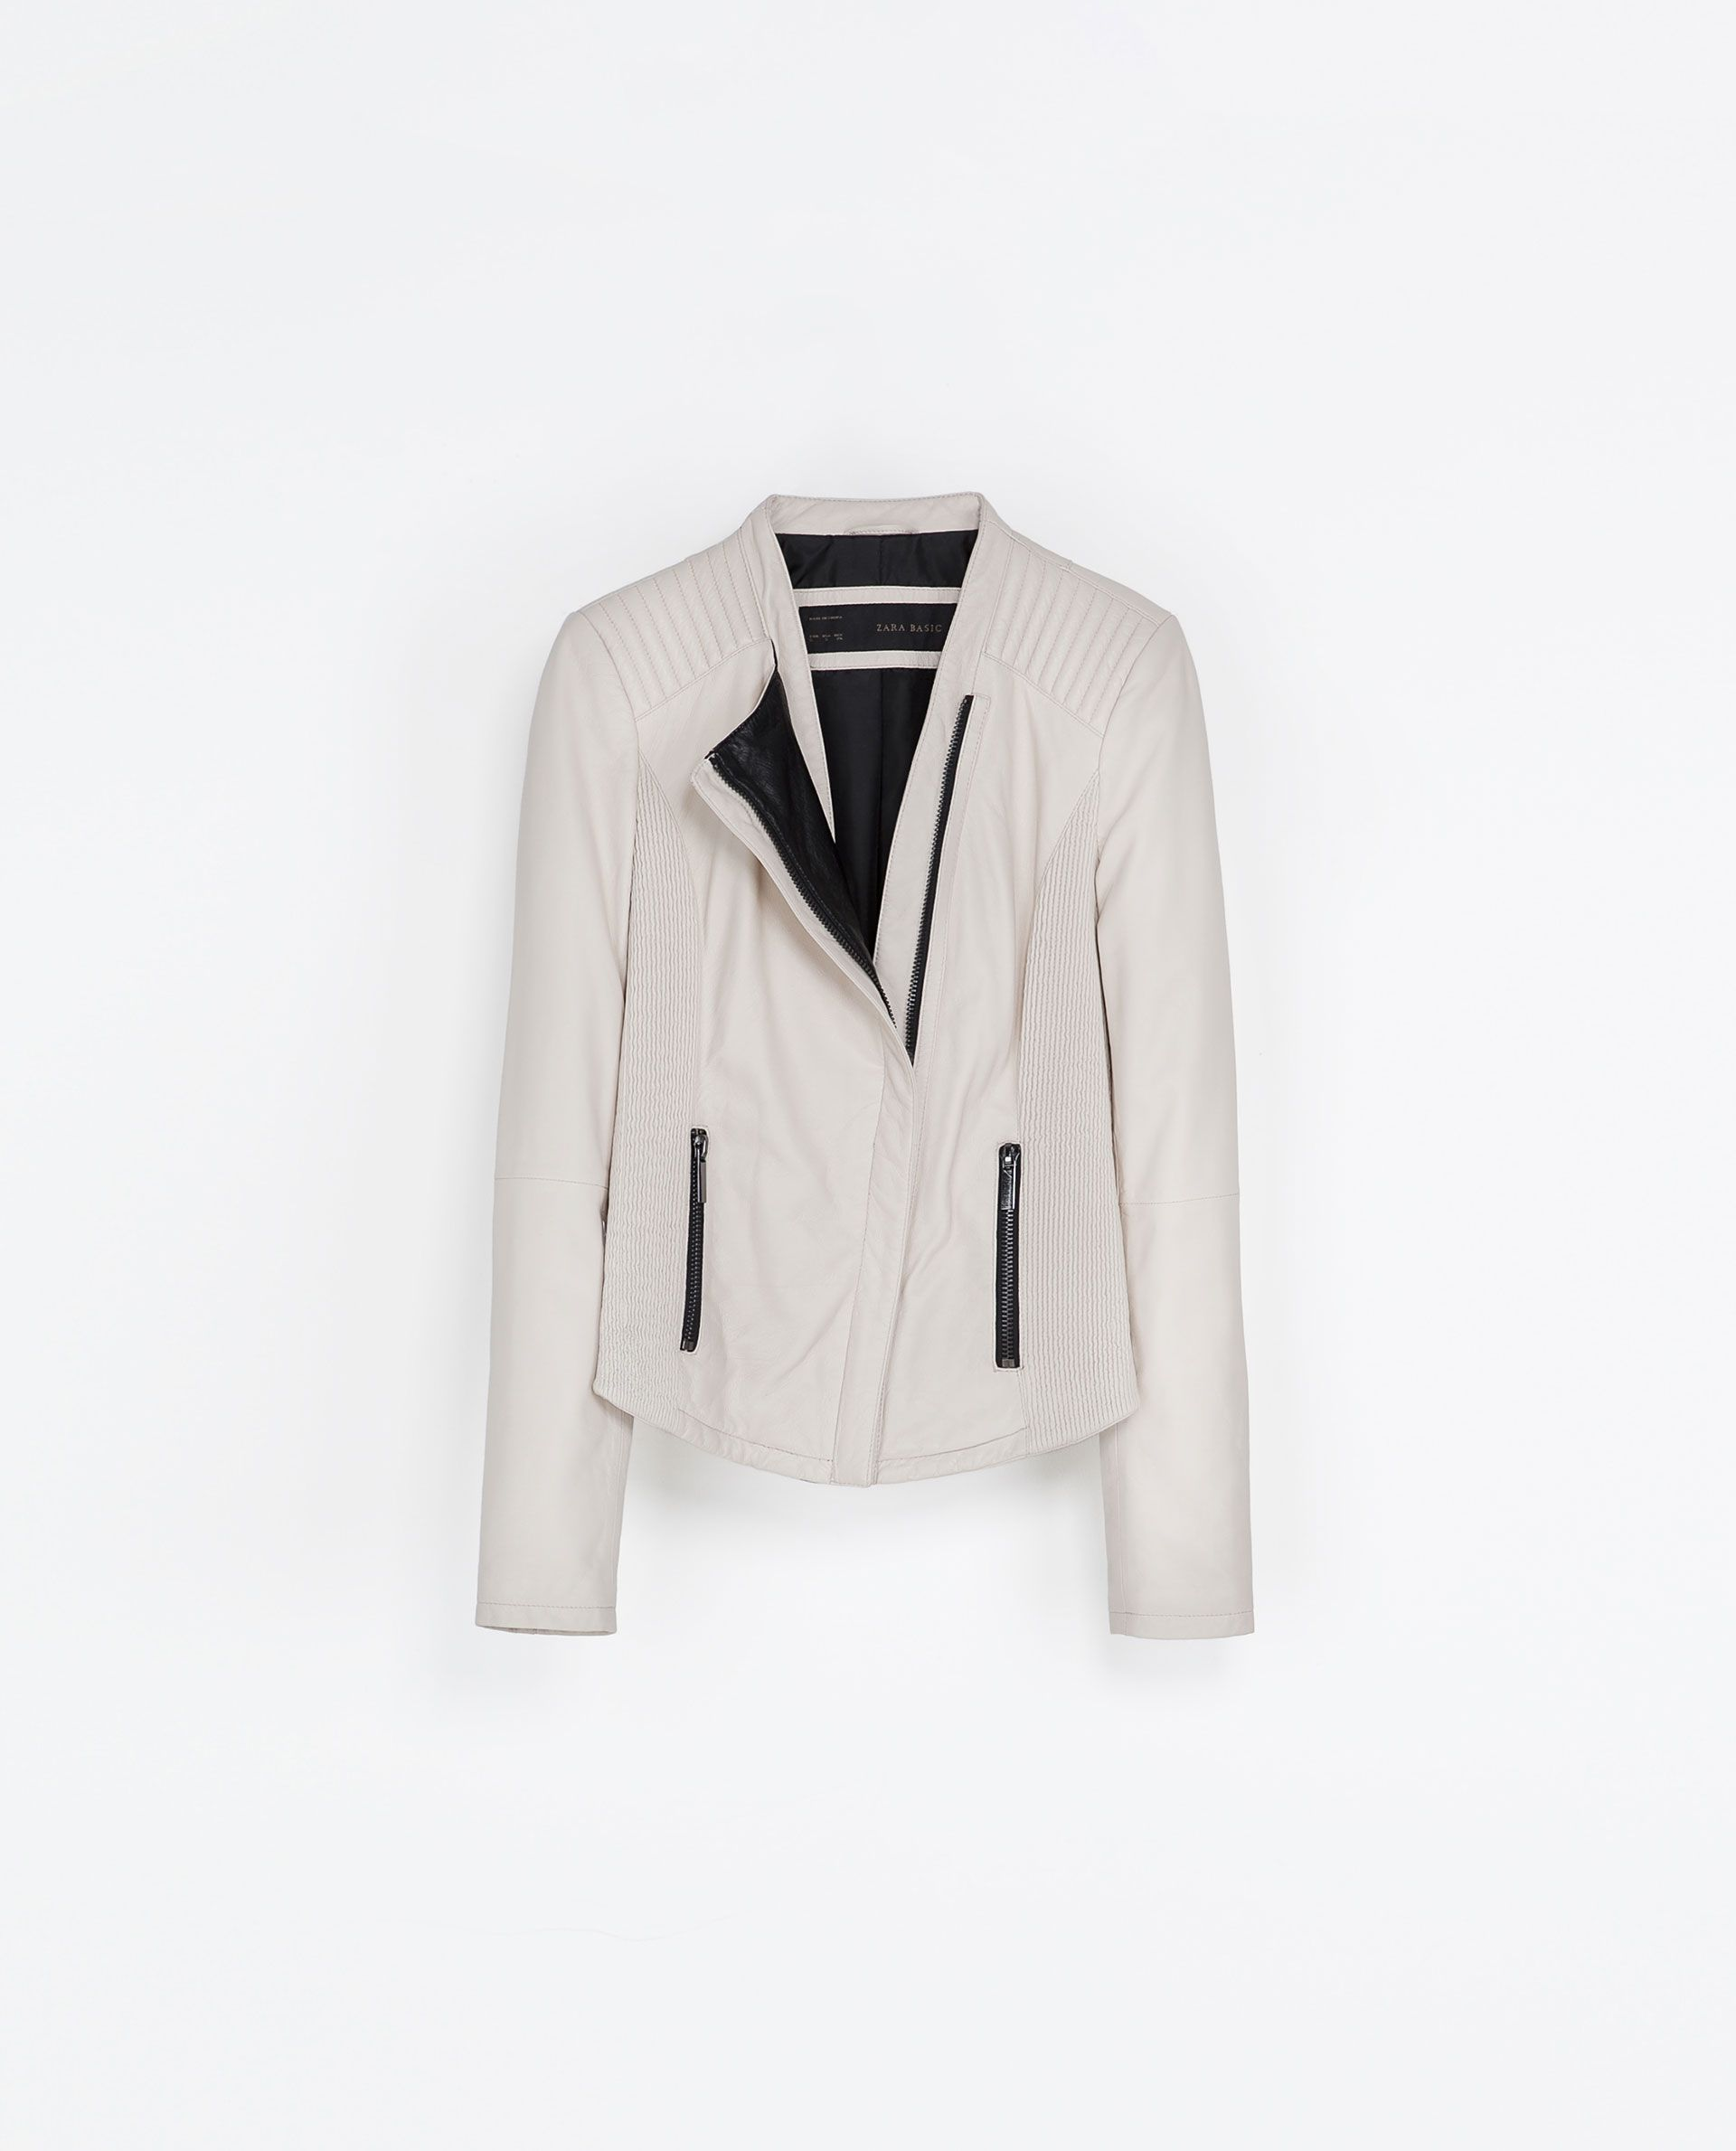 Cream leather jacket from Zara because Zara knows me